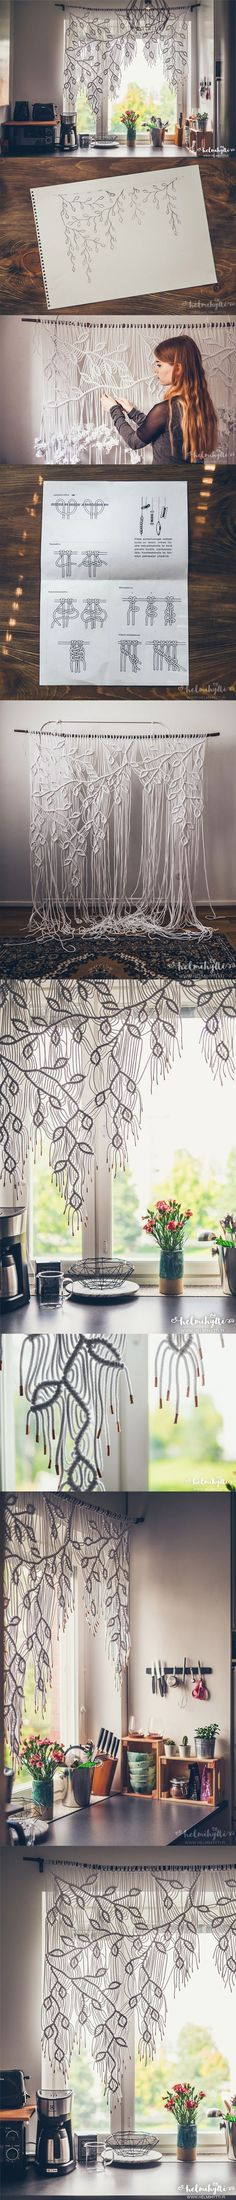 Home Decorating Ideas Bohemian DIY macrame curtain with asymmetric pattern tutorial. Only one knot type used! C… Home Decorating Ideas Bohemian DIY macrame curtain with asymmetric pattern tutorial. Only one knot type used! Easy Home Decor, Handmade Home Decor, Handmade Ideas, Macrame Projects, Diy Projects, Sewing Projects, Yarn Crafts, Diy And Crafts, Crochet Crafts